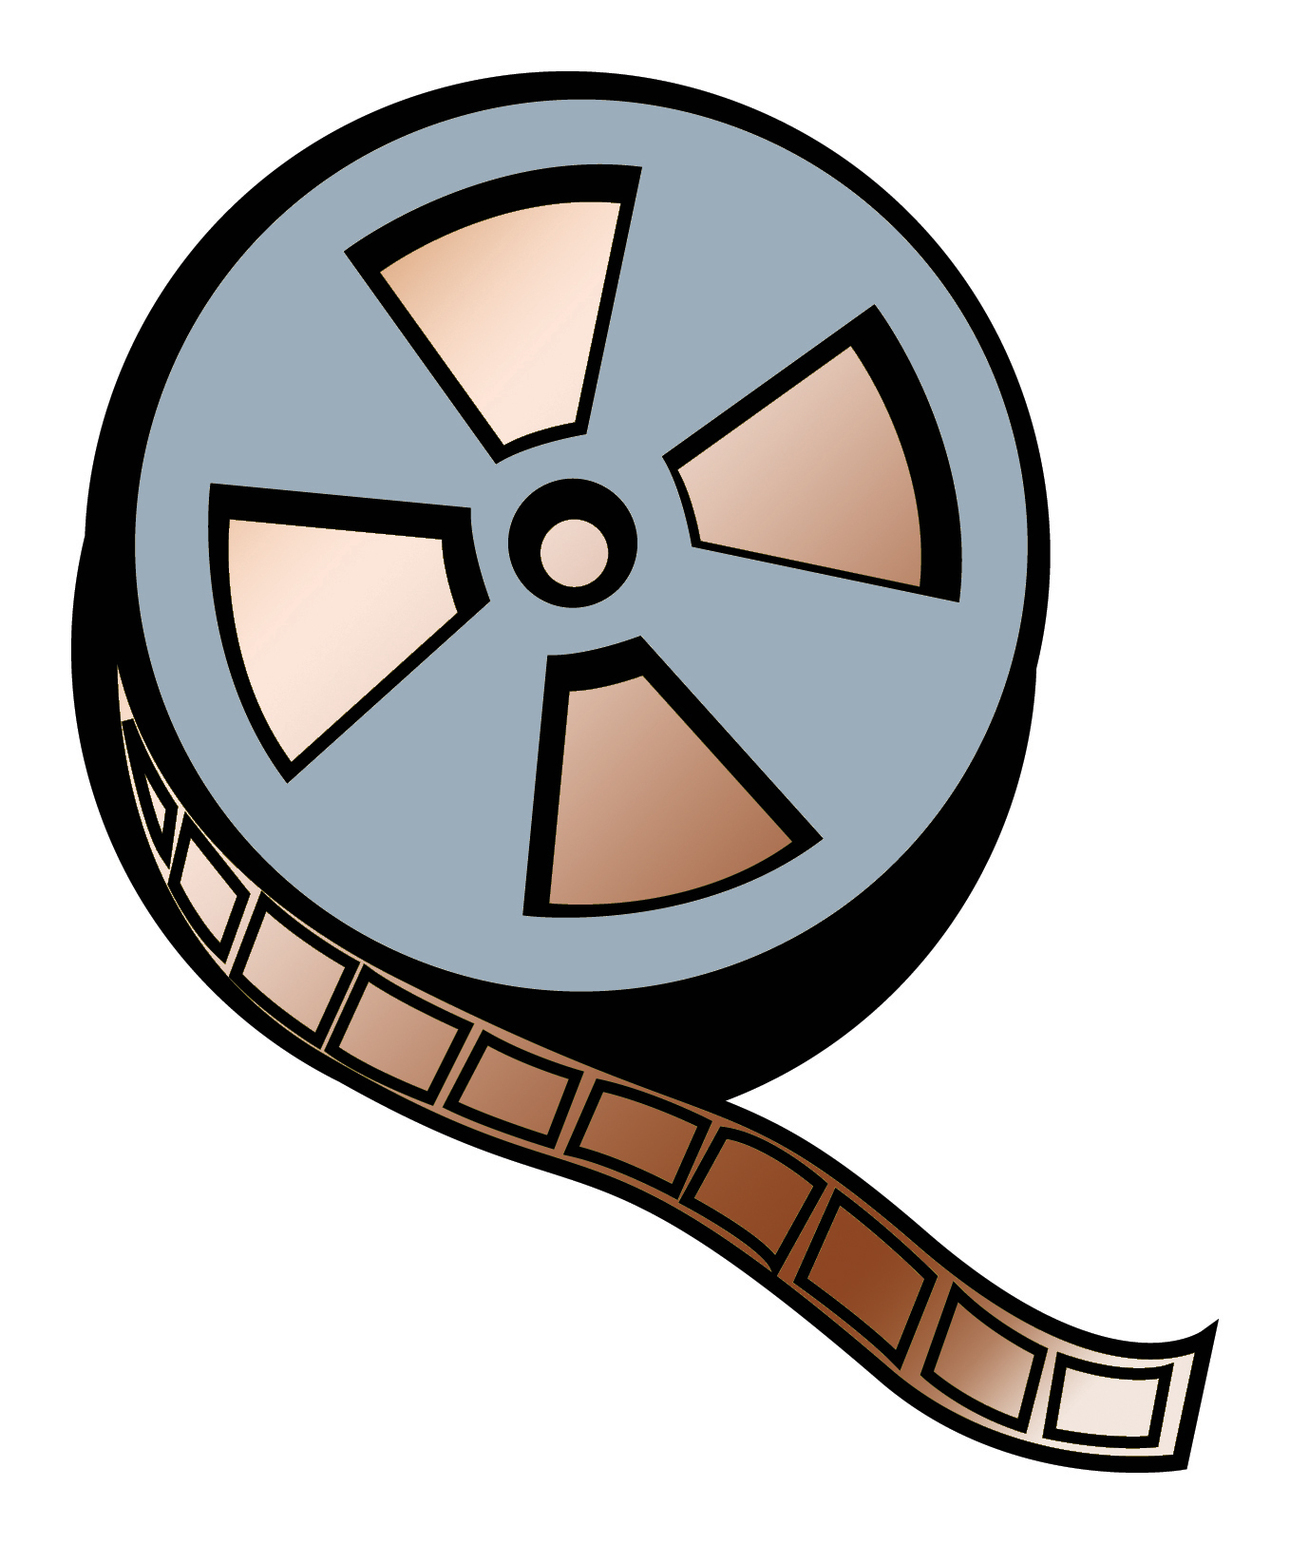 1290x1544 Movie Reel Clip Art Clipart Free To Use Clip Art Resource